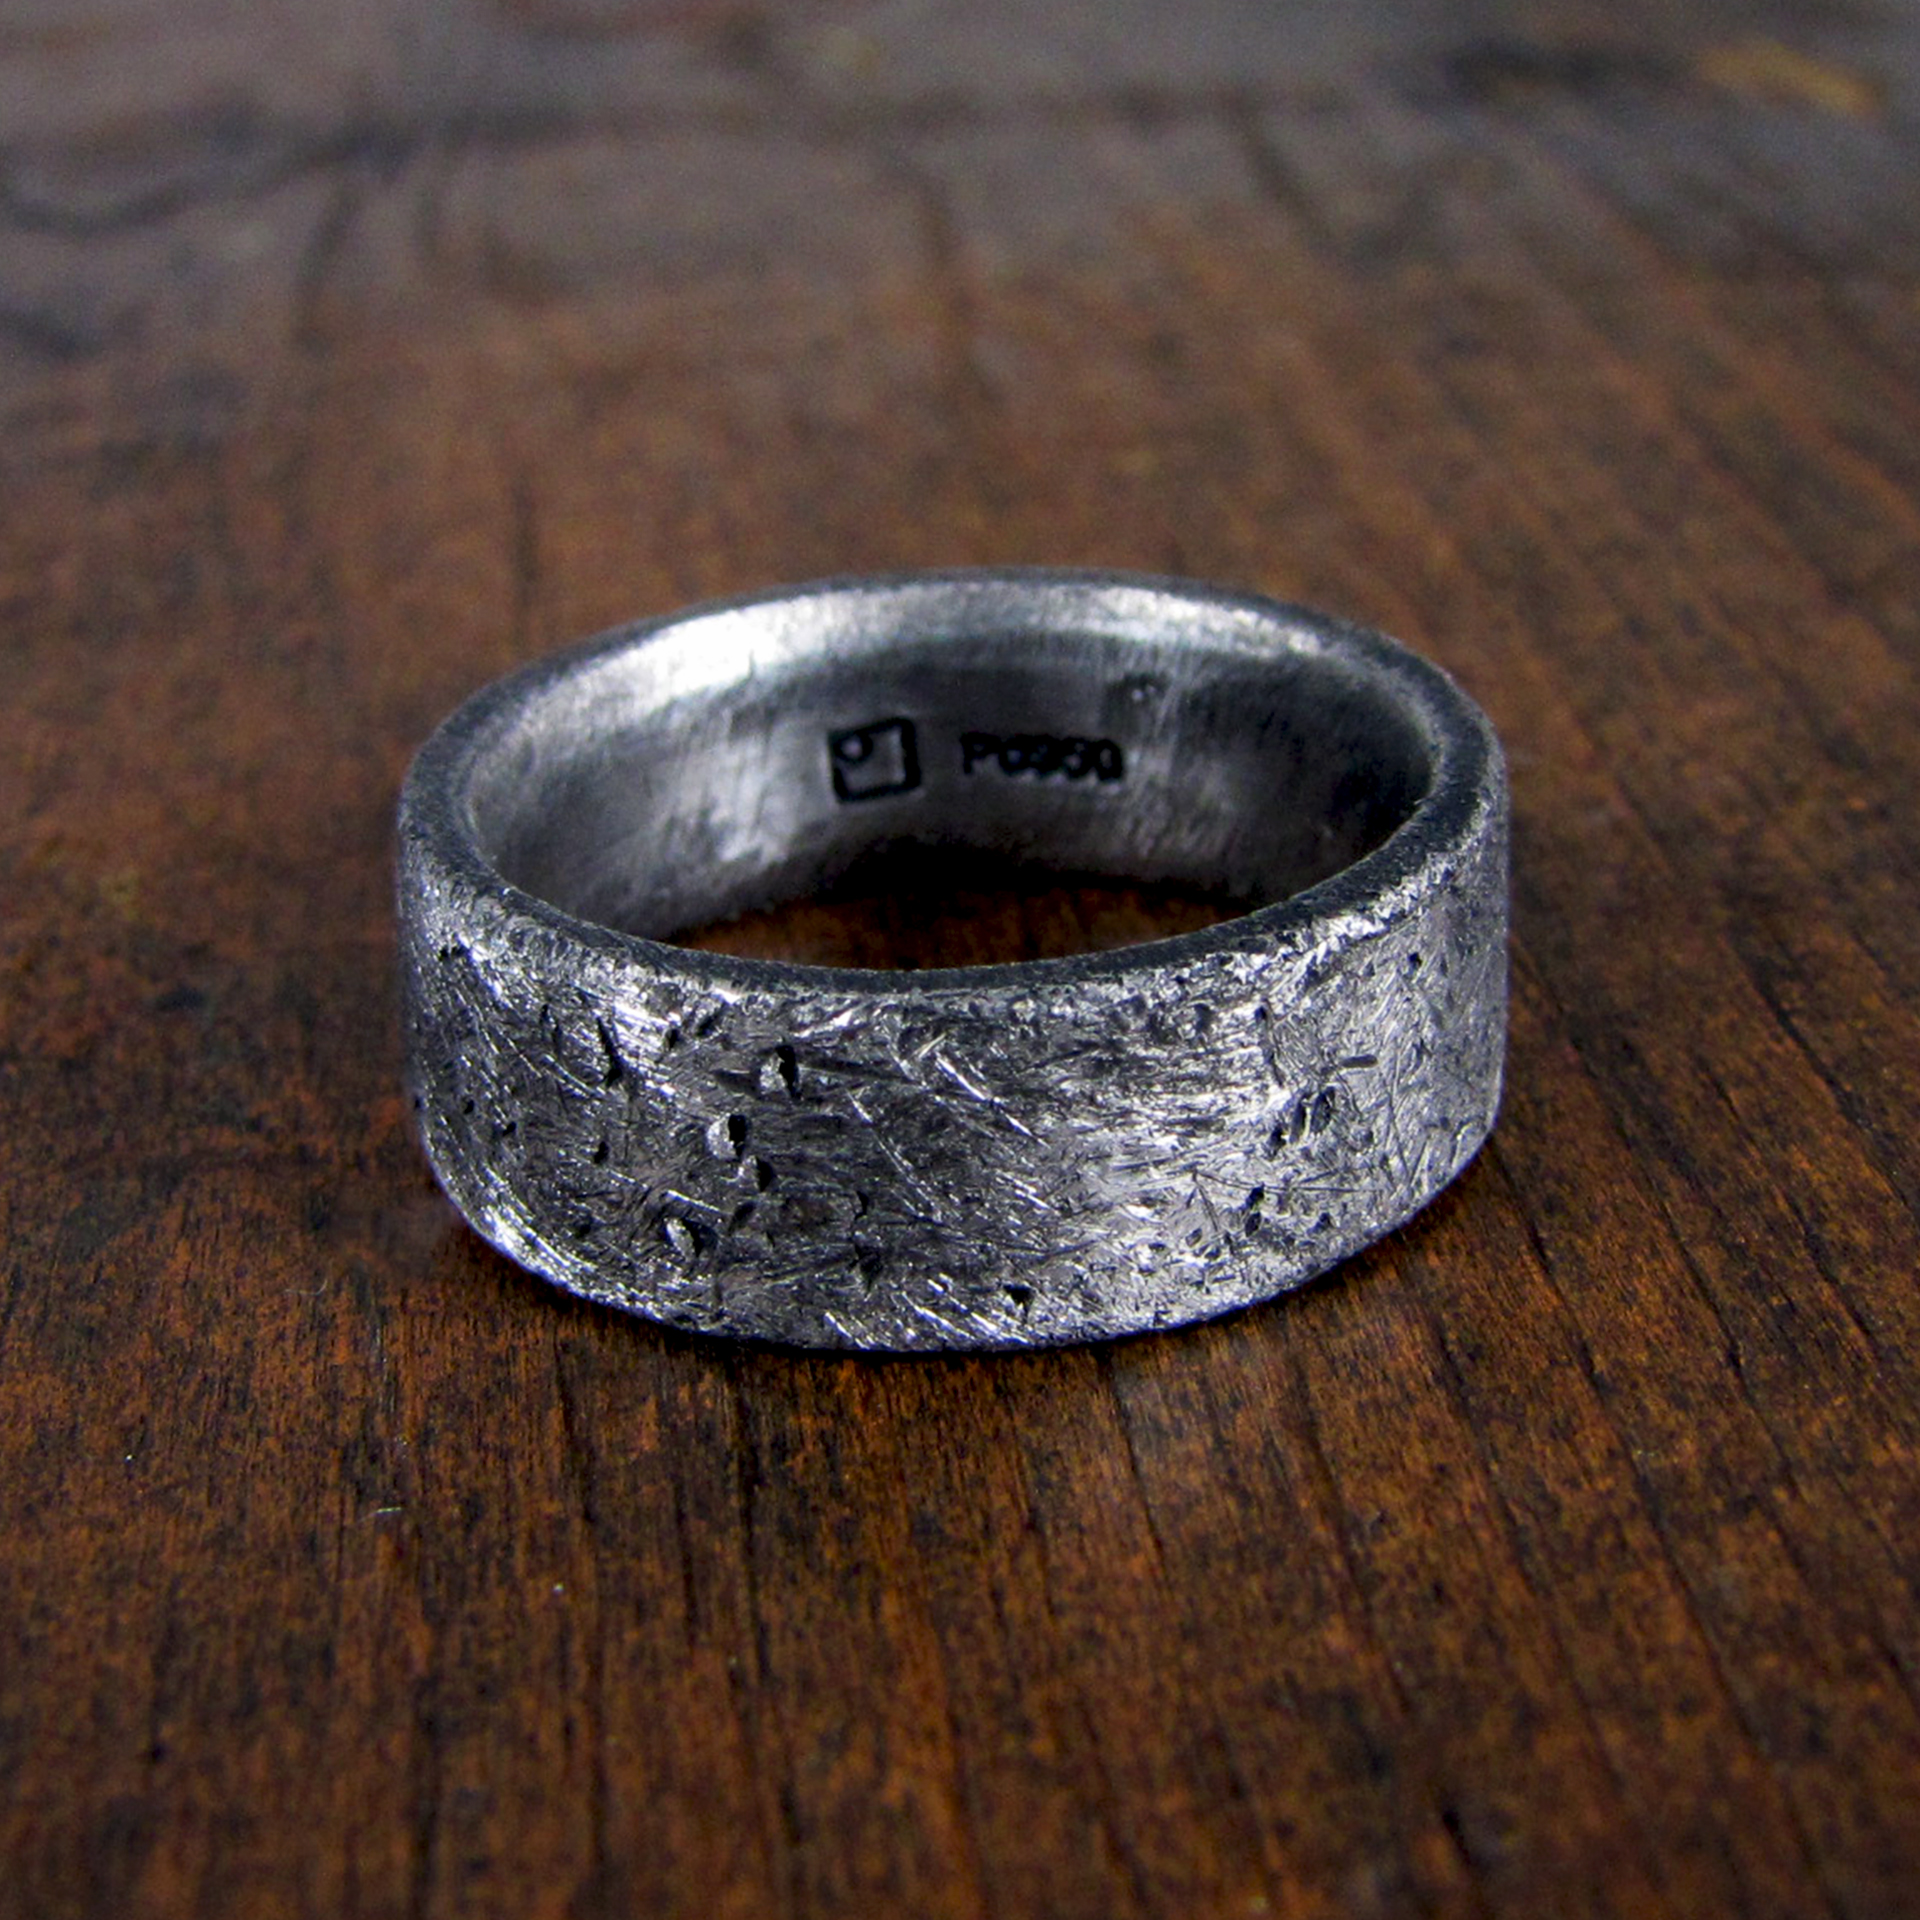 rustic wedding rings rustic wedding bands extraordinary The couple and guests will gather at the rustic spot on the grounds at cool design